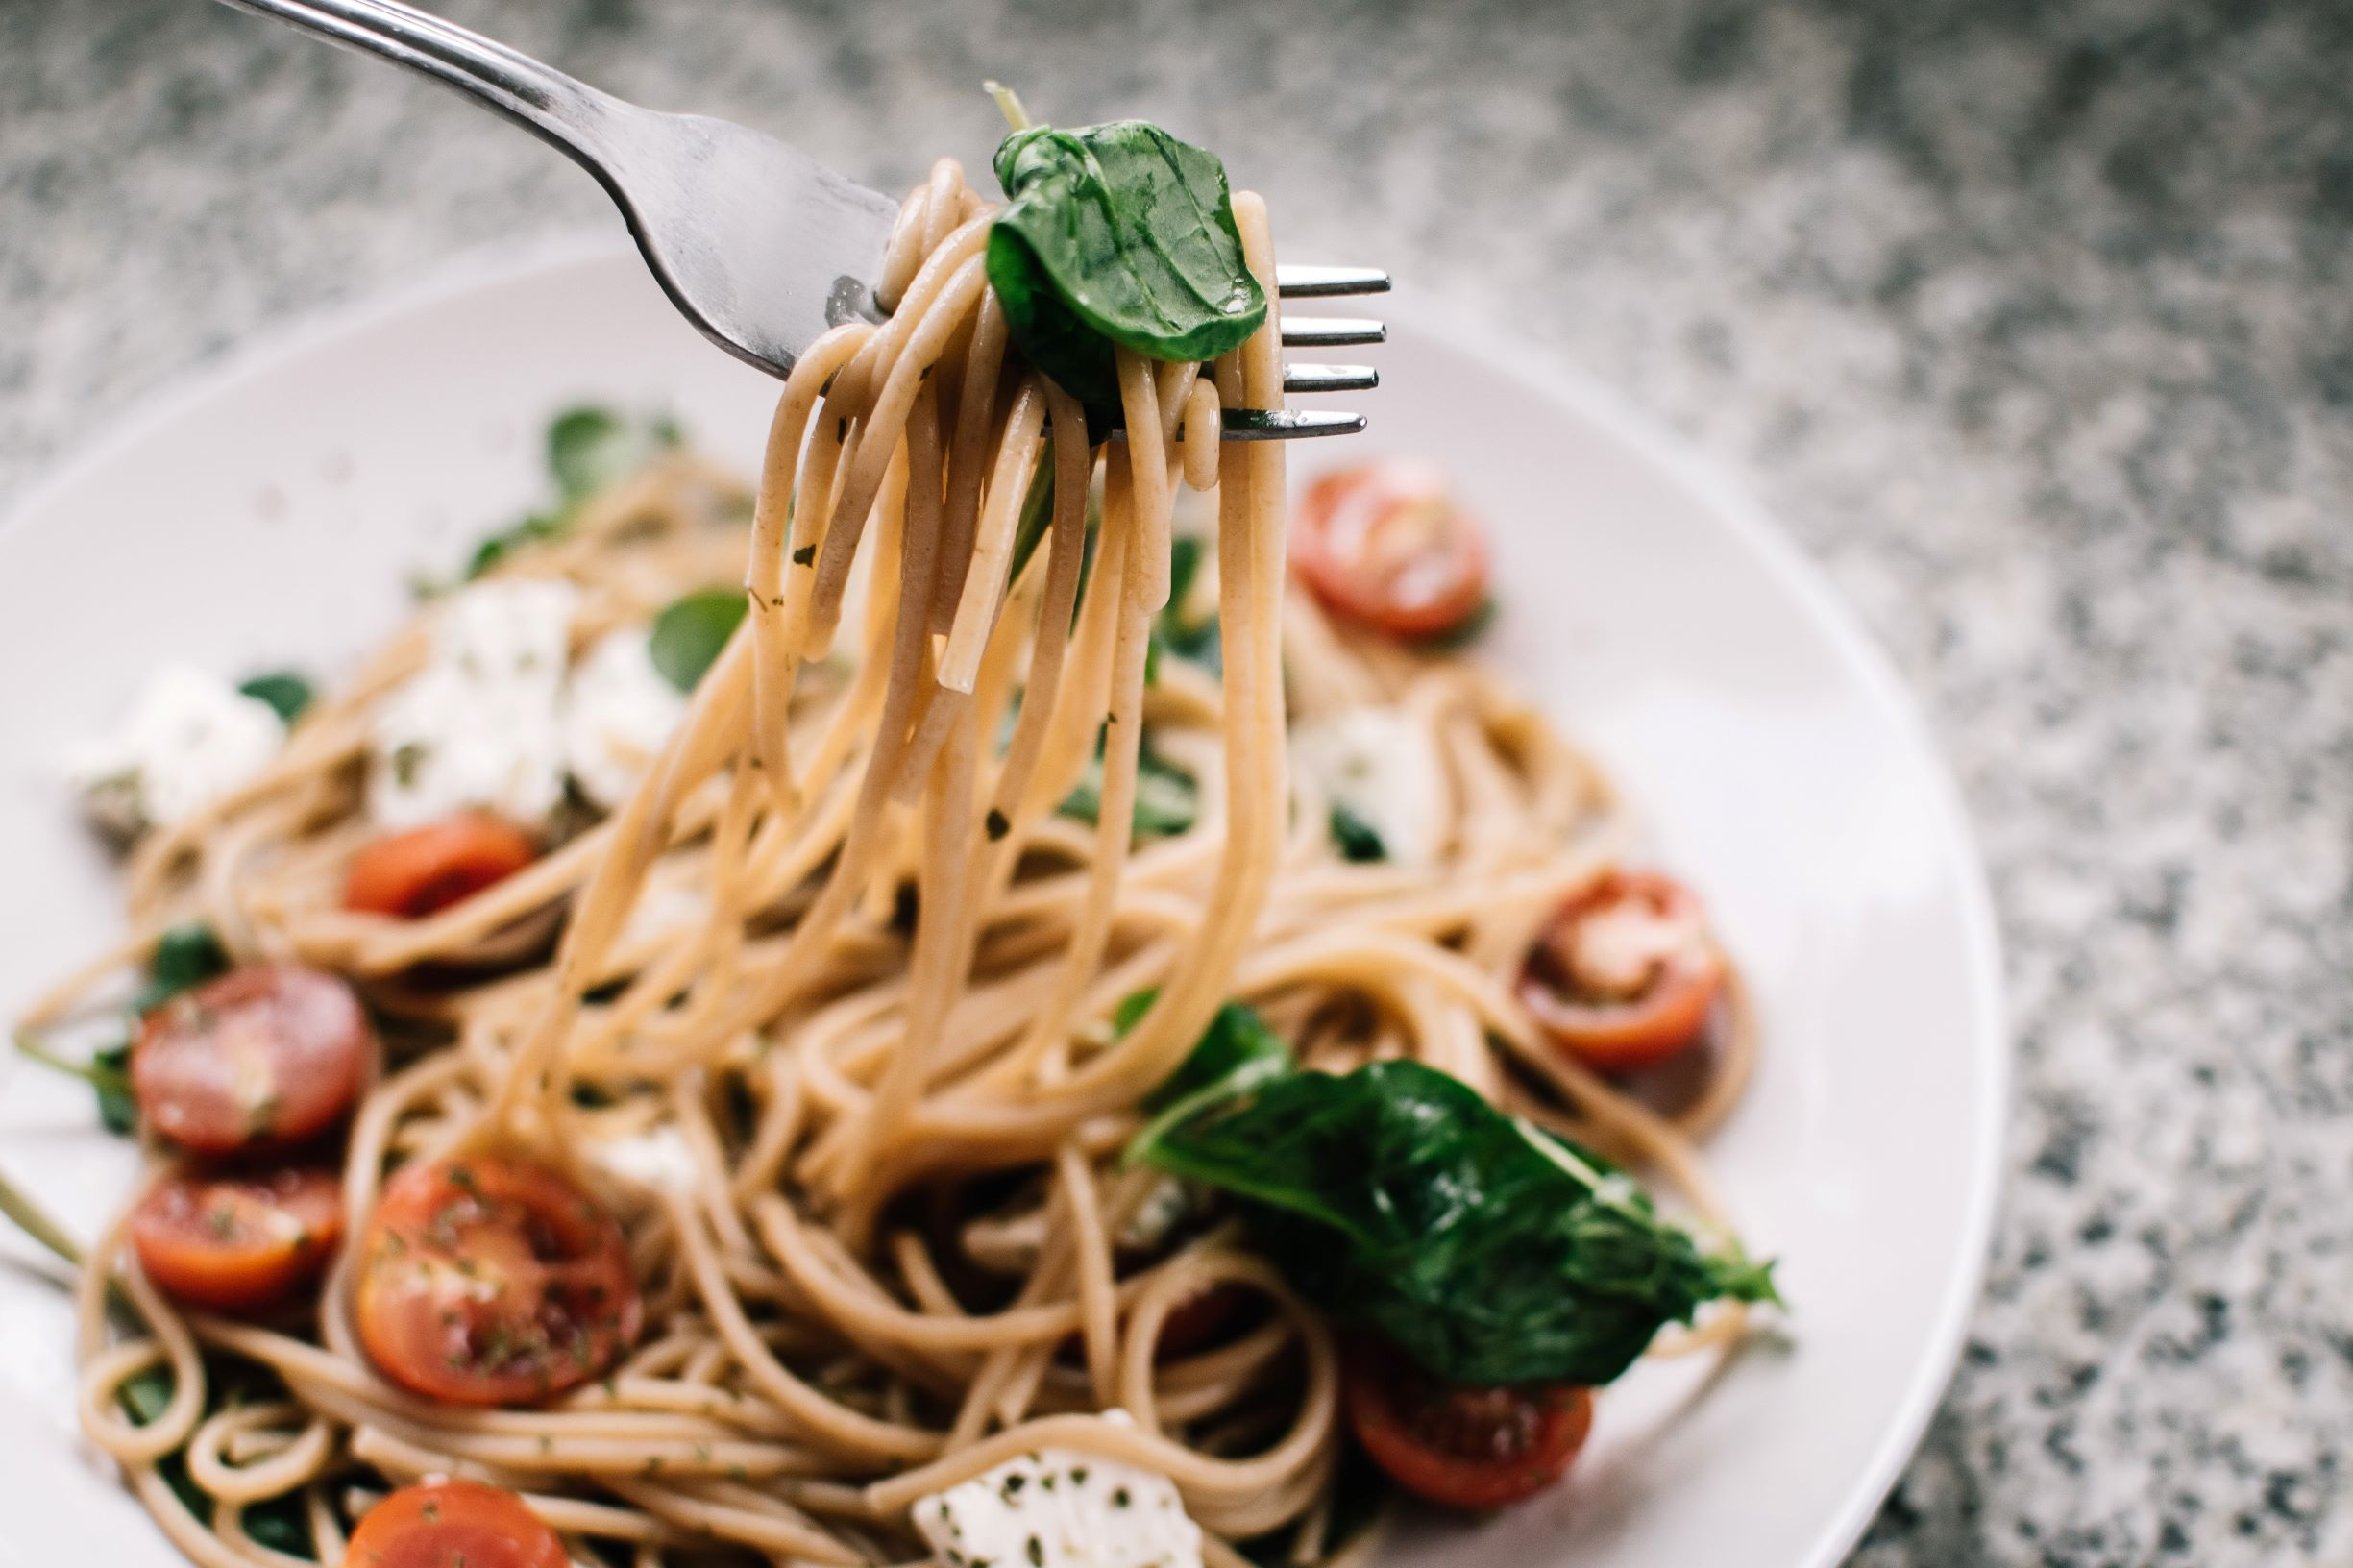 plate of pasta with basil leaves and tomatoes